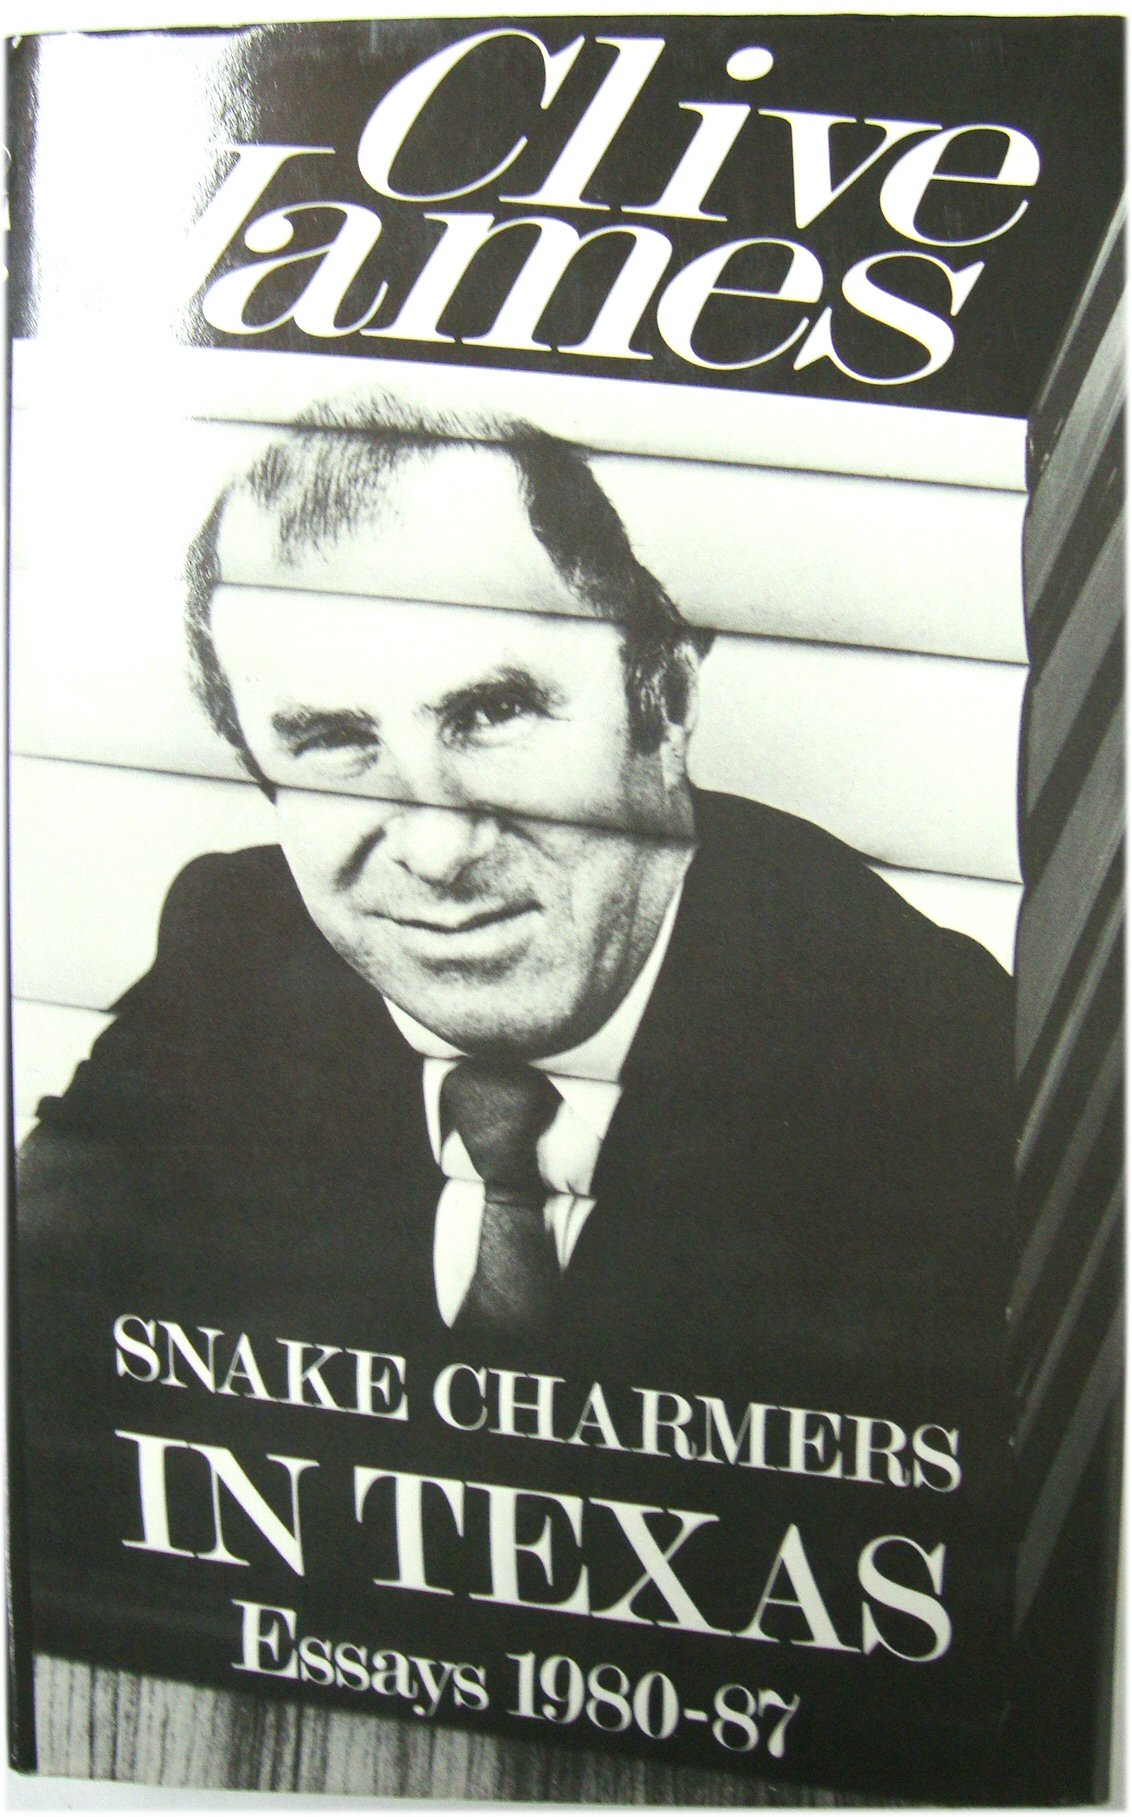 Image for Snake Charmers In Texas: Essays 1980-87